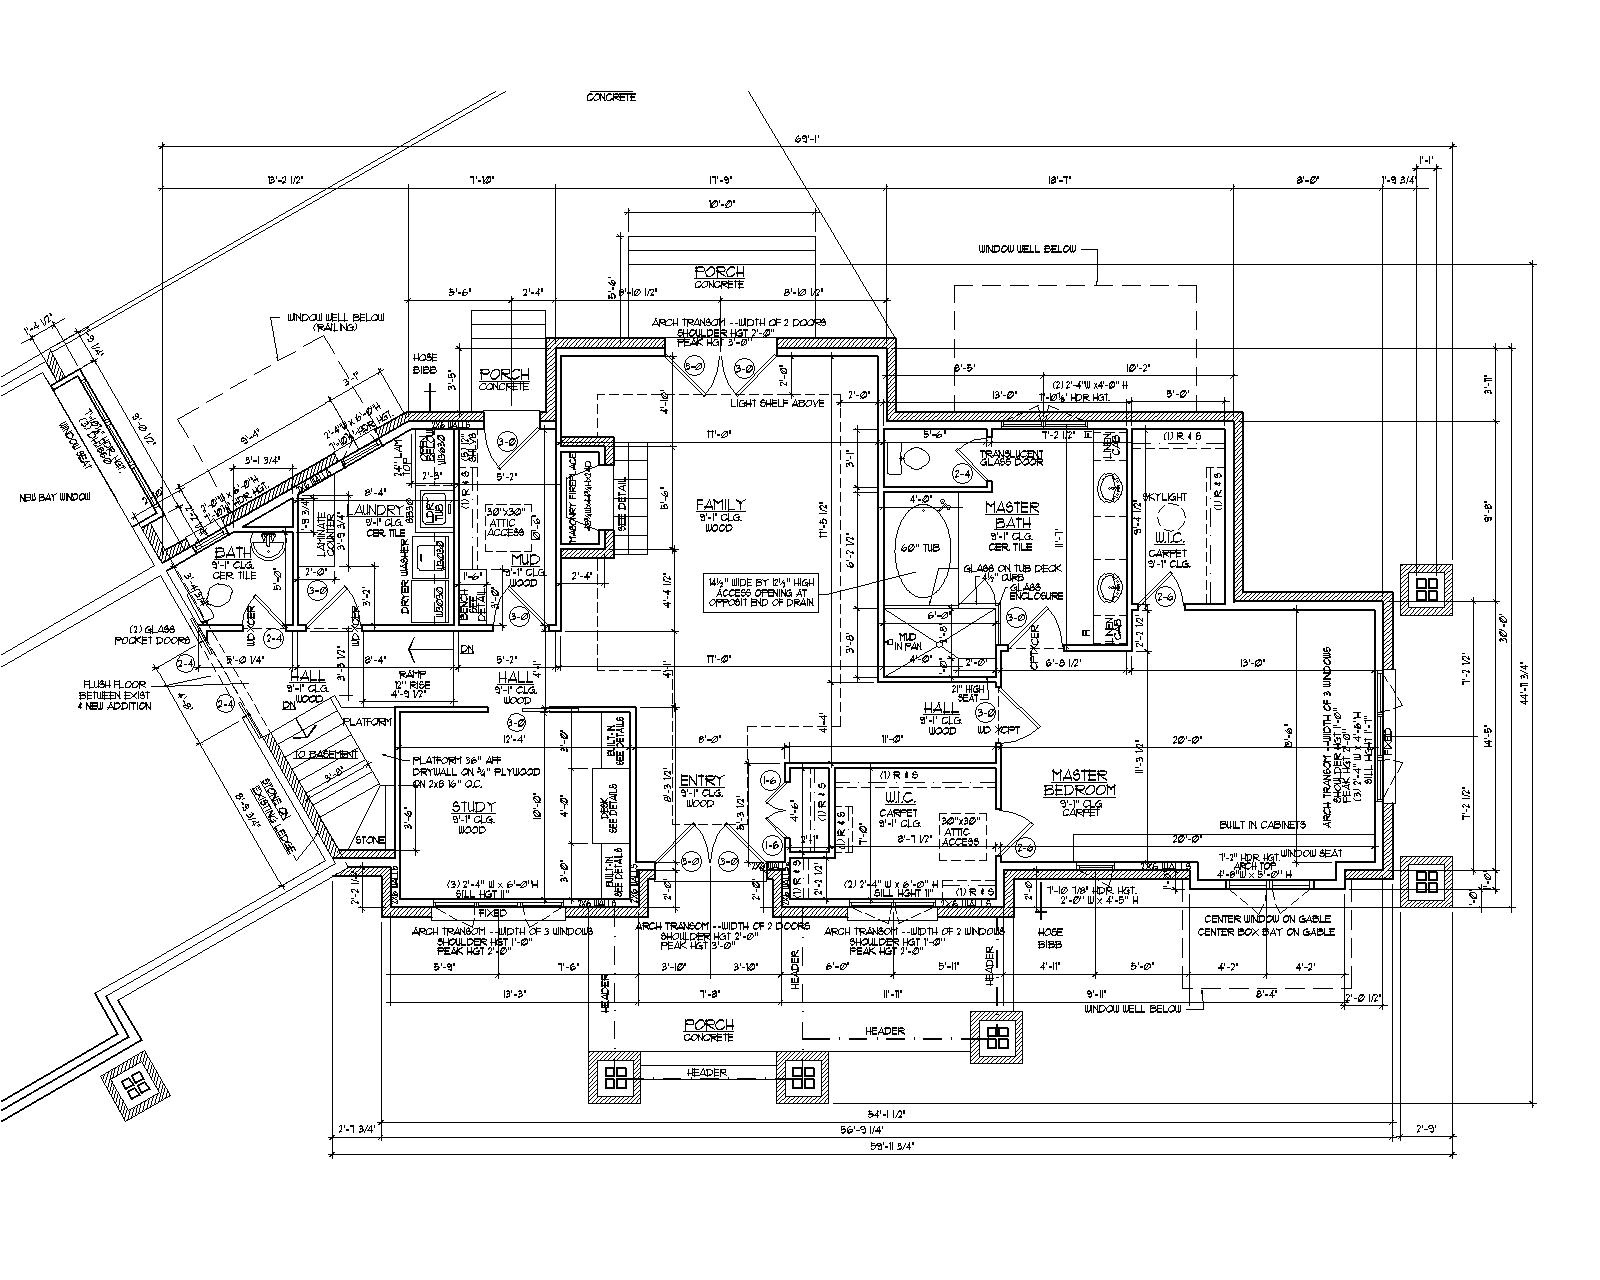 architecture architectural building plans 2d autocad house plans residential building drawings cad services cool